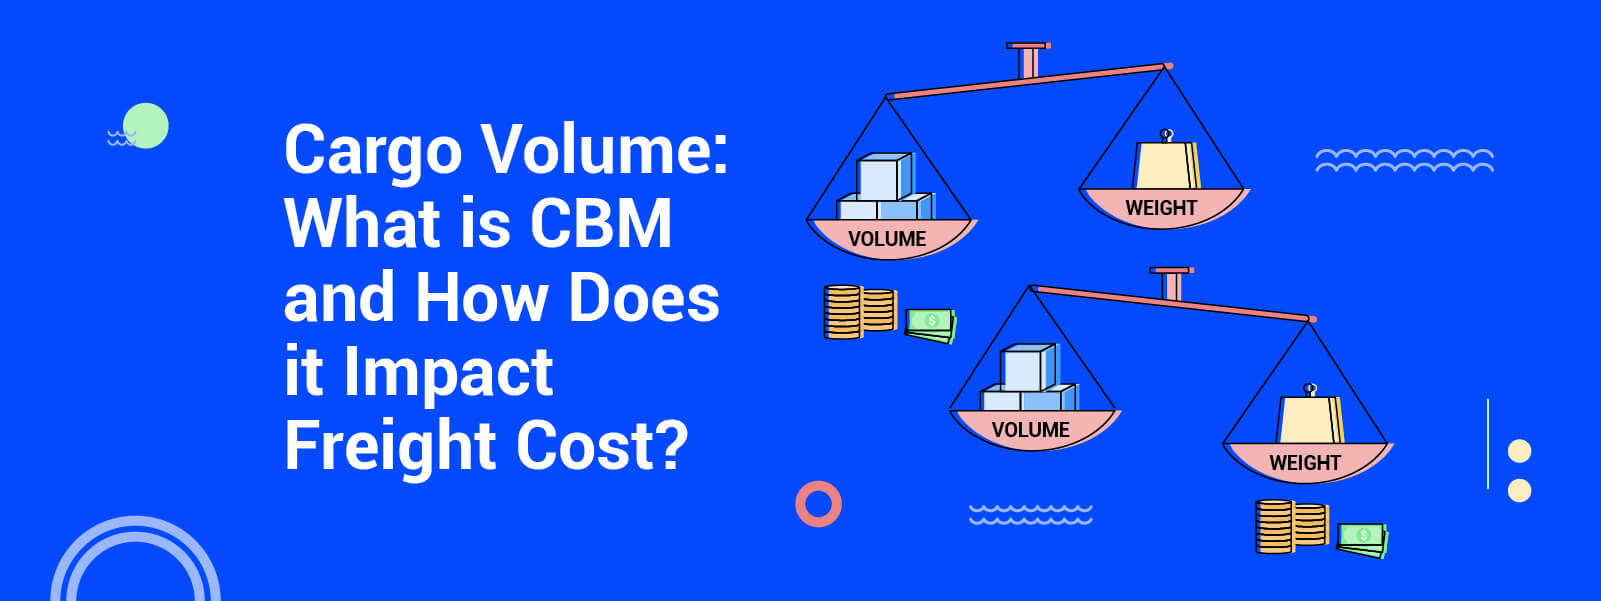 What Is CBM And How Do You Calculate It?